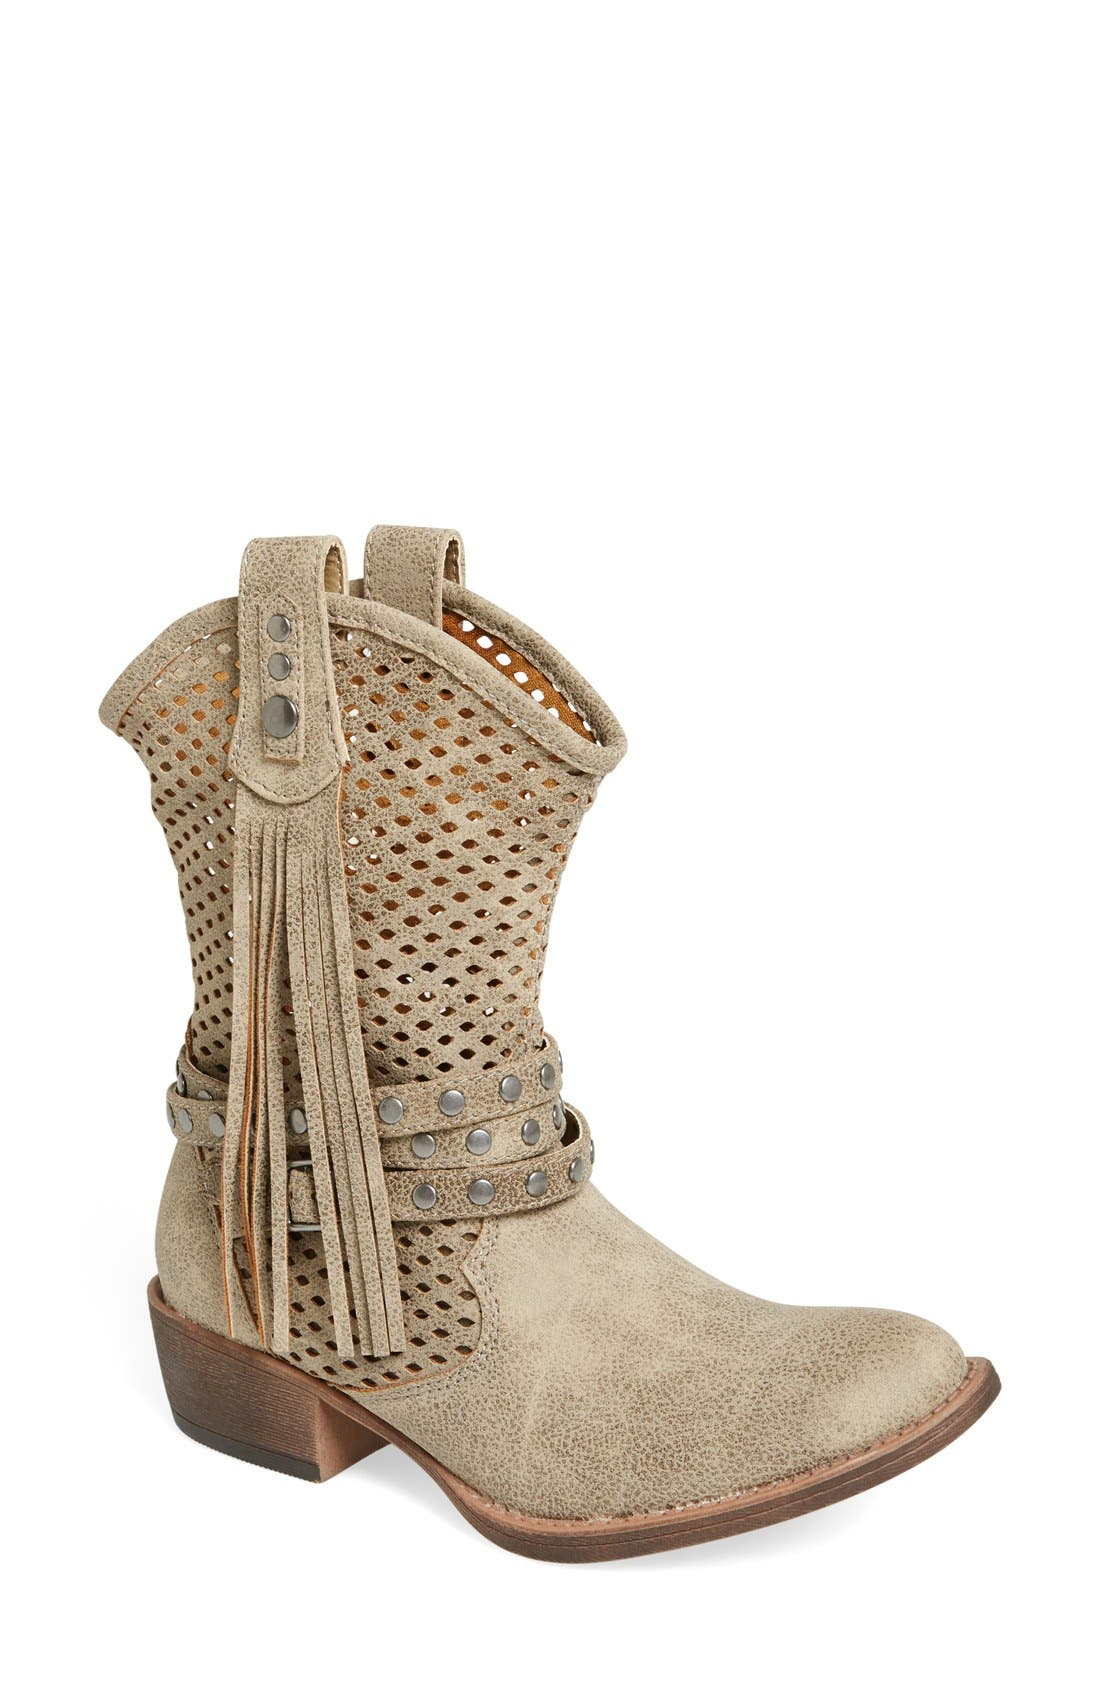 Main Image - Coconuts by Matisse 'Rawhide' Slouchy Western Boot (Women)